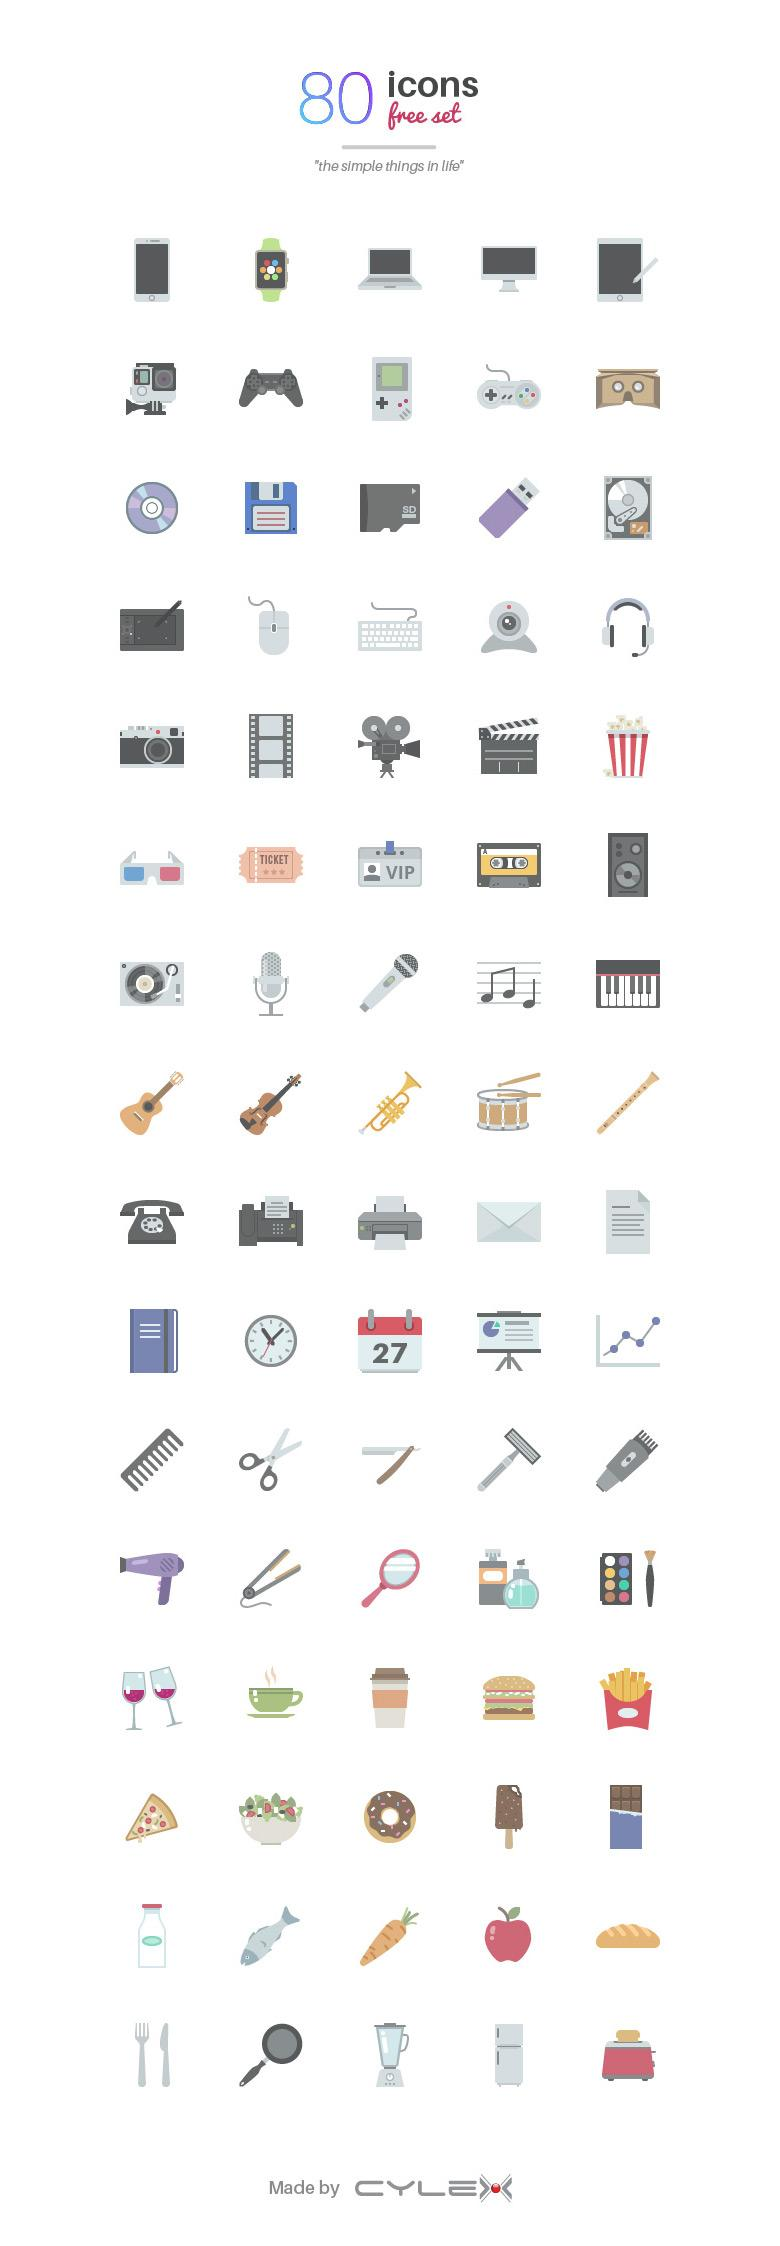 Simple Things in Life 80 Icon Set